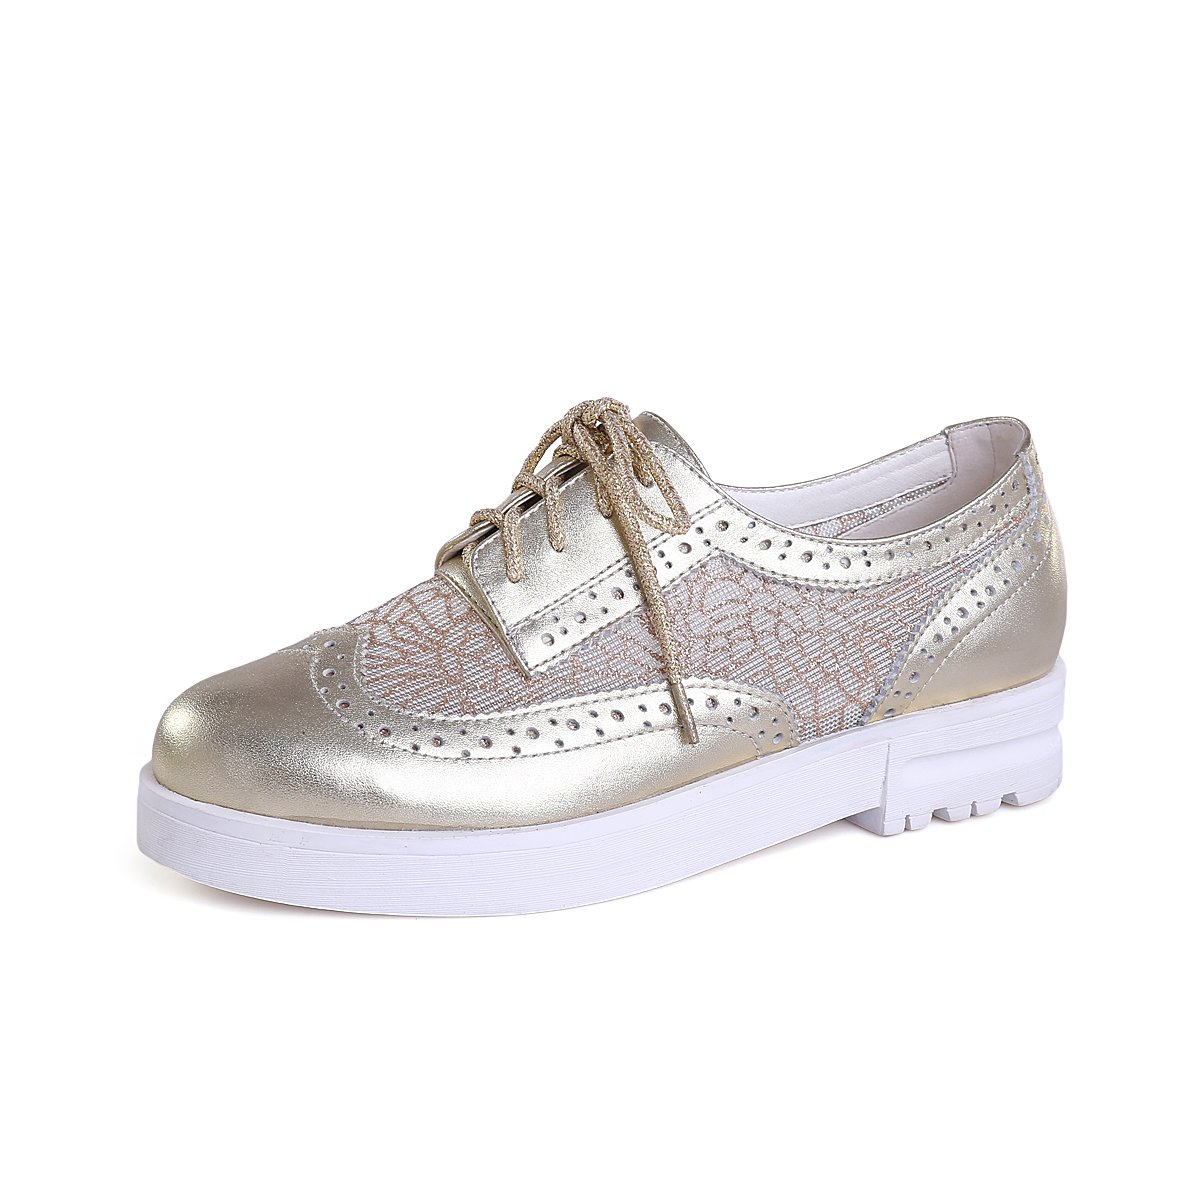 MINIVOG Women's Brogue Low Heel Walking Shoes for Travel Gold 5.5 by MINIVOG